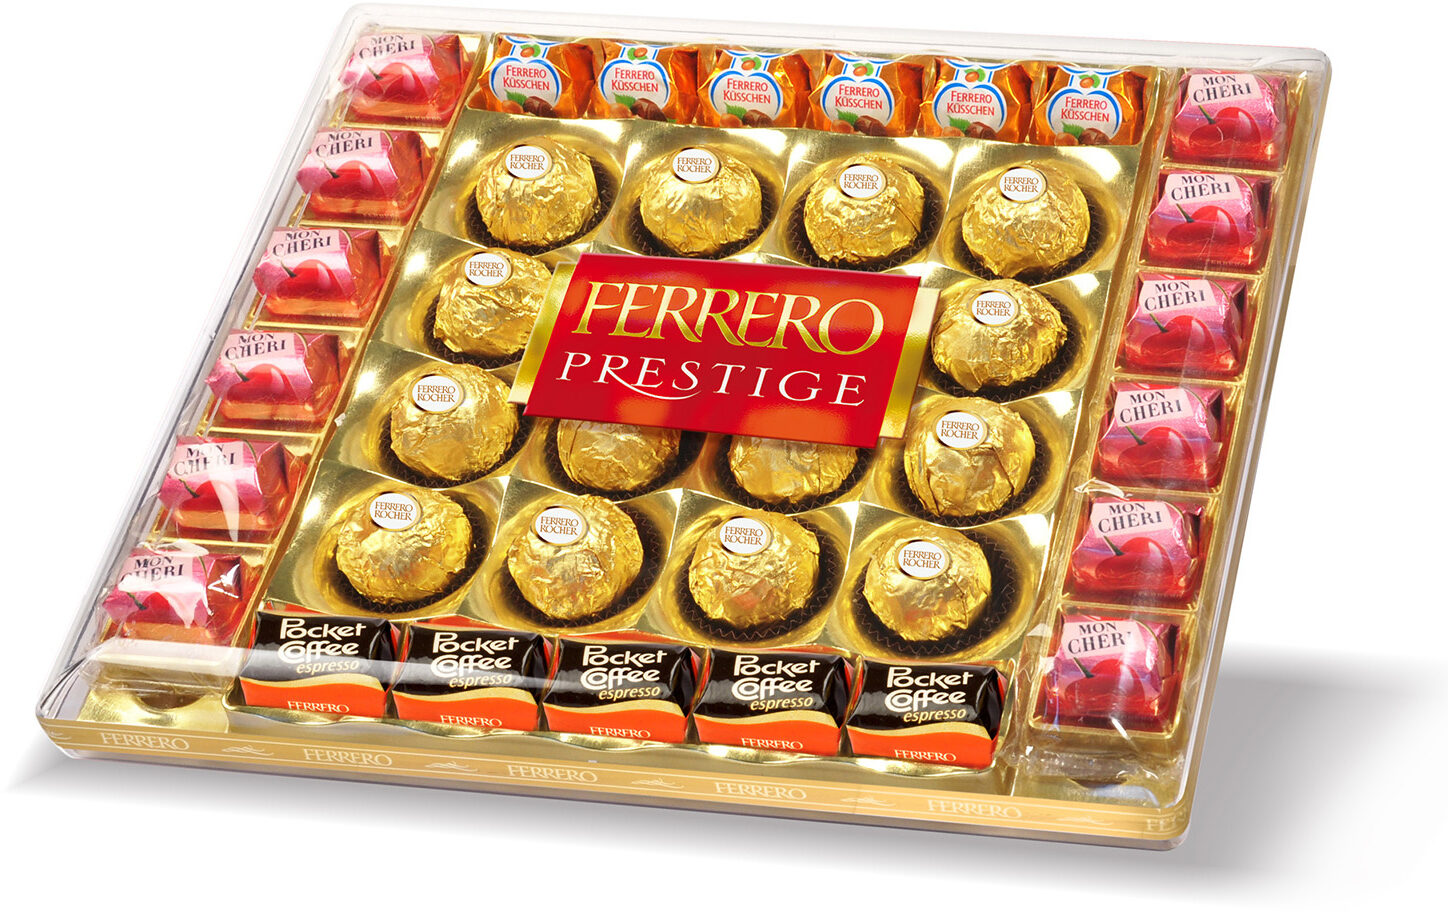 Ferrero prestige assortiment de chocolats boite de 39 pieces - Prodotto - fr